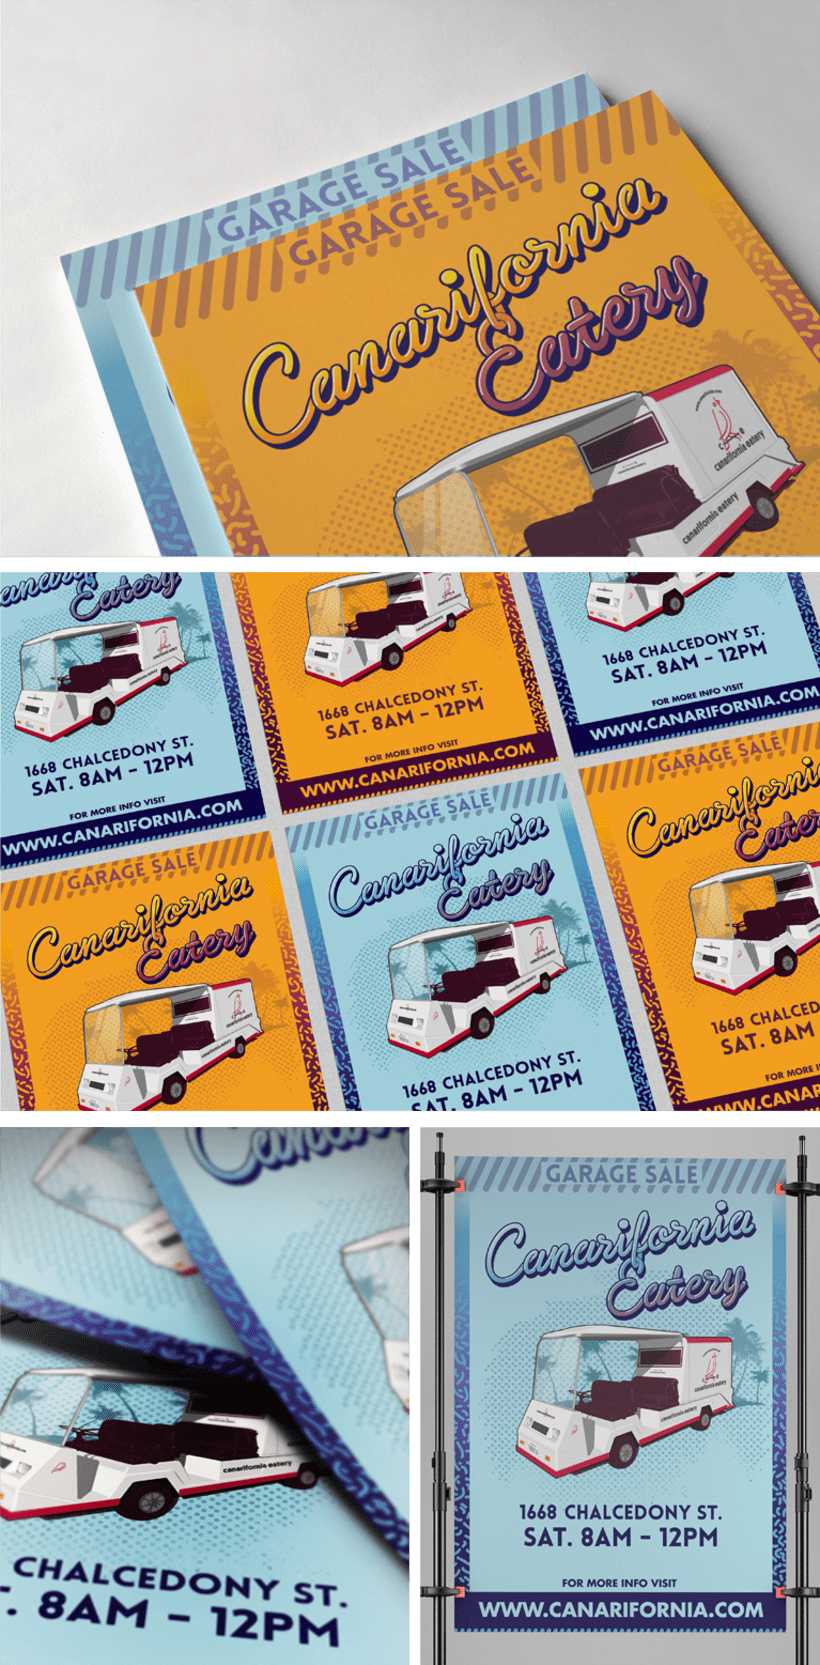 Canarifornia Eatery // Poster & Flyers 1